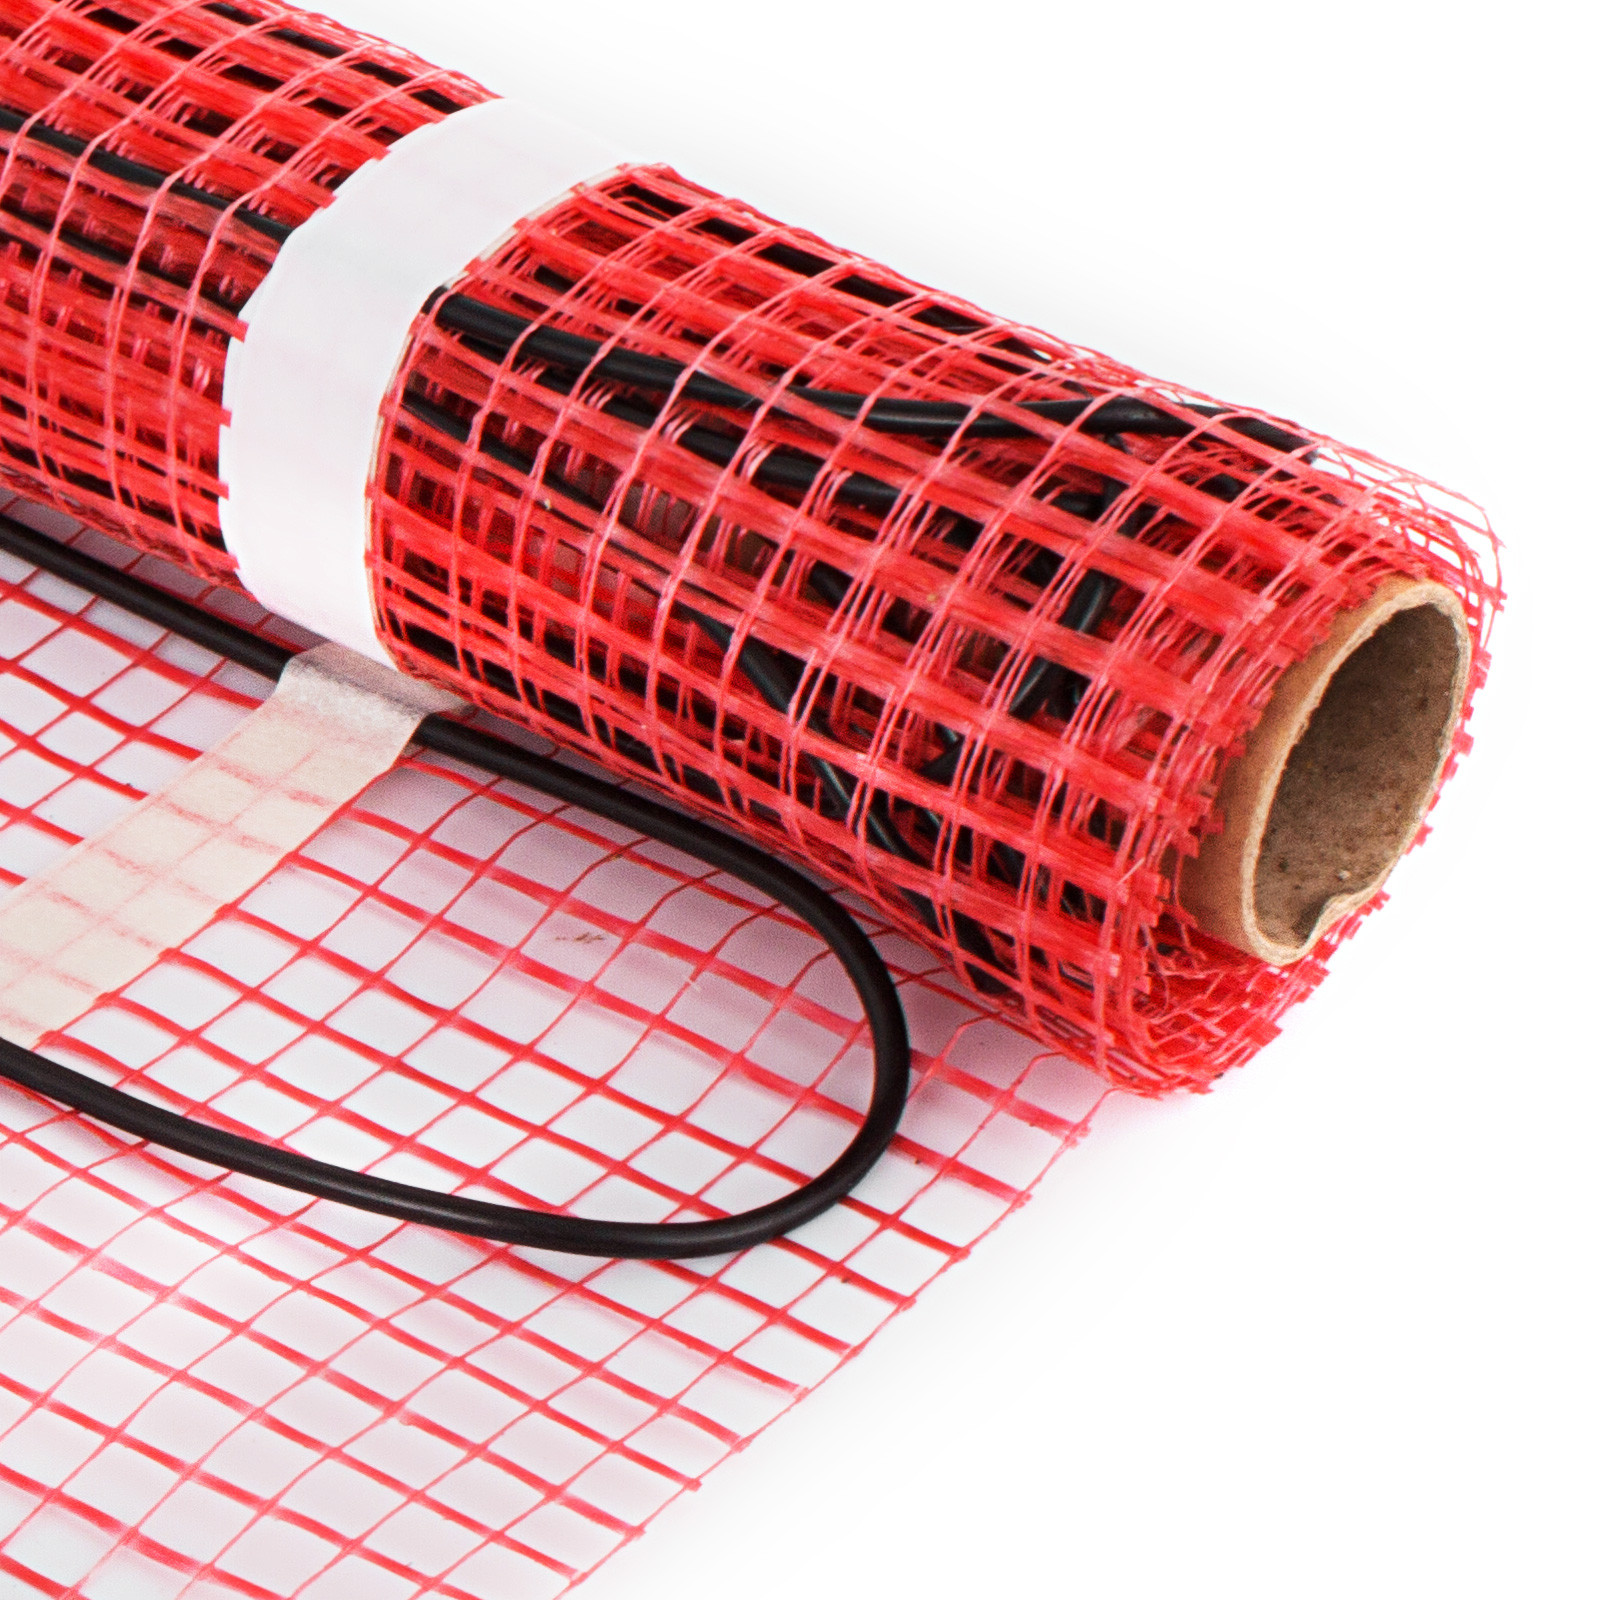 Electric Under Floor Heating mat Tile Radiant Warm System Self-Adhesive Mats